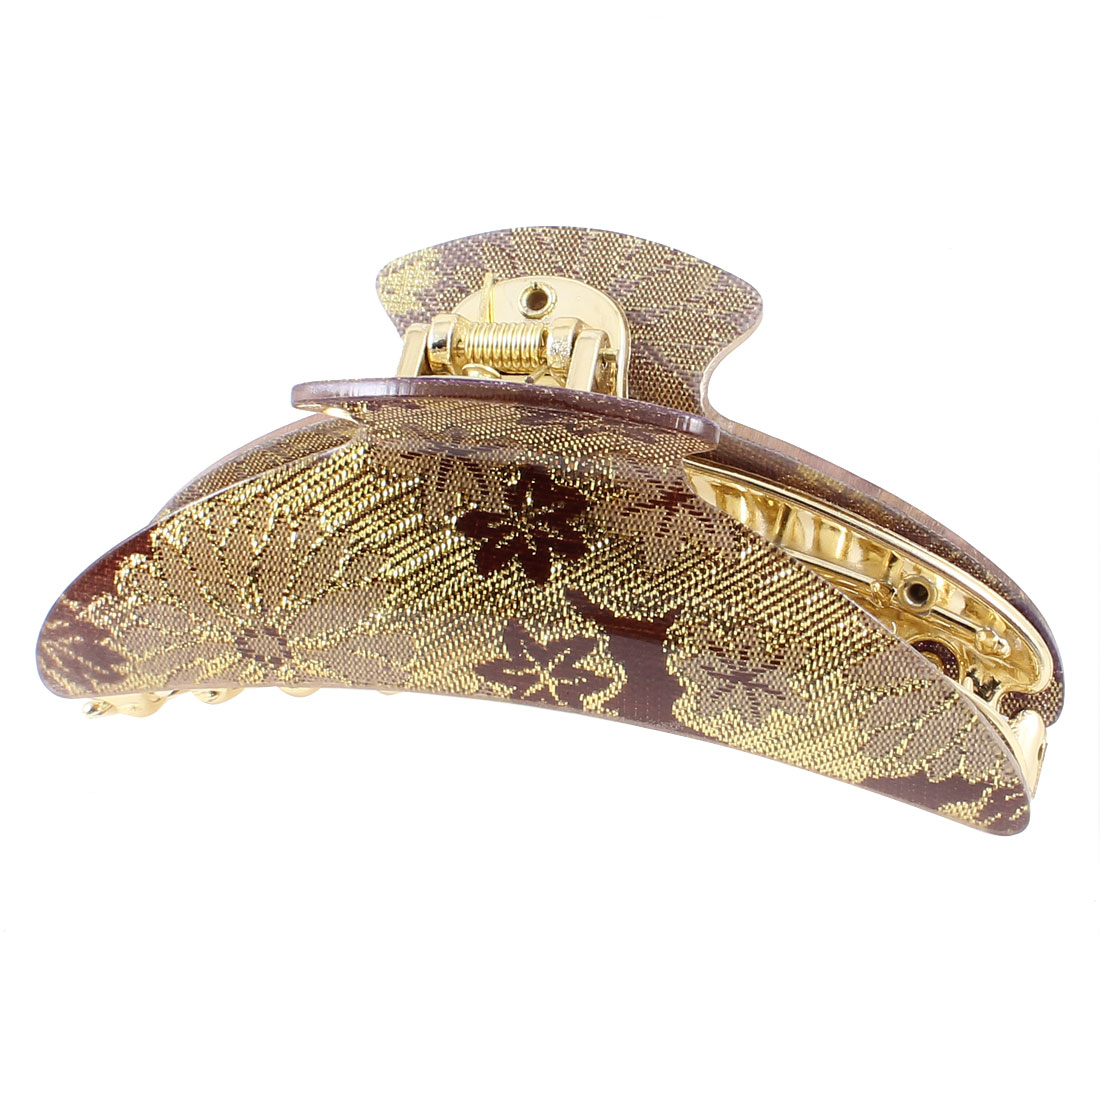 Gold Tone Purple Brown Florals Pattern Spring Loaded Hair Claw Clip Clamping